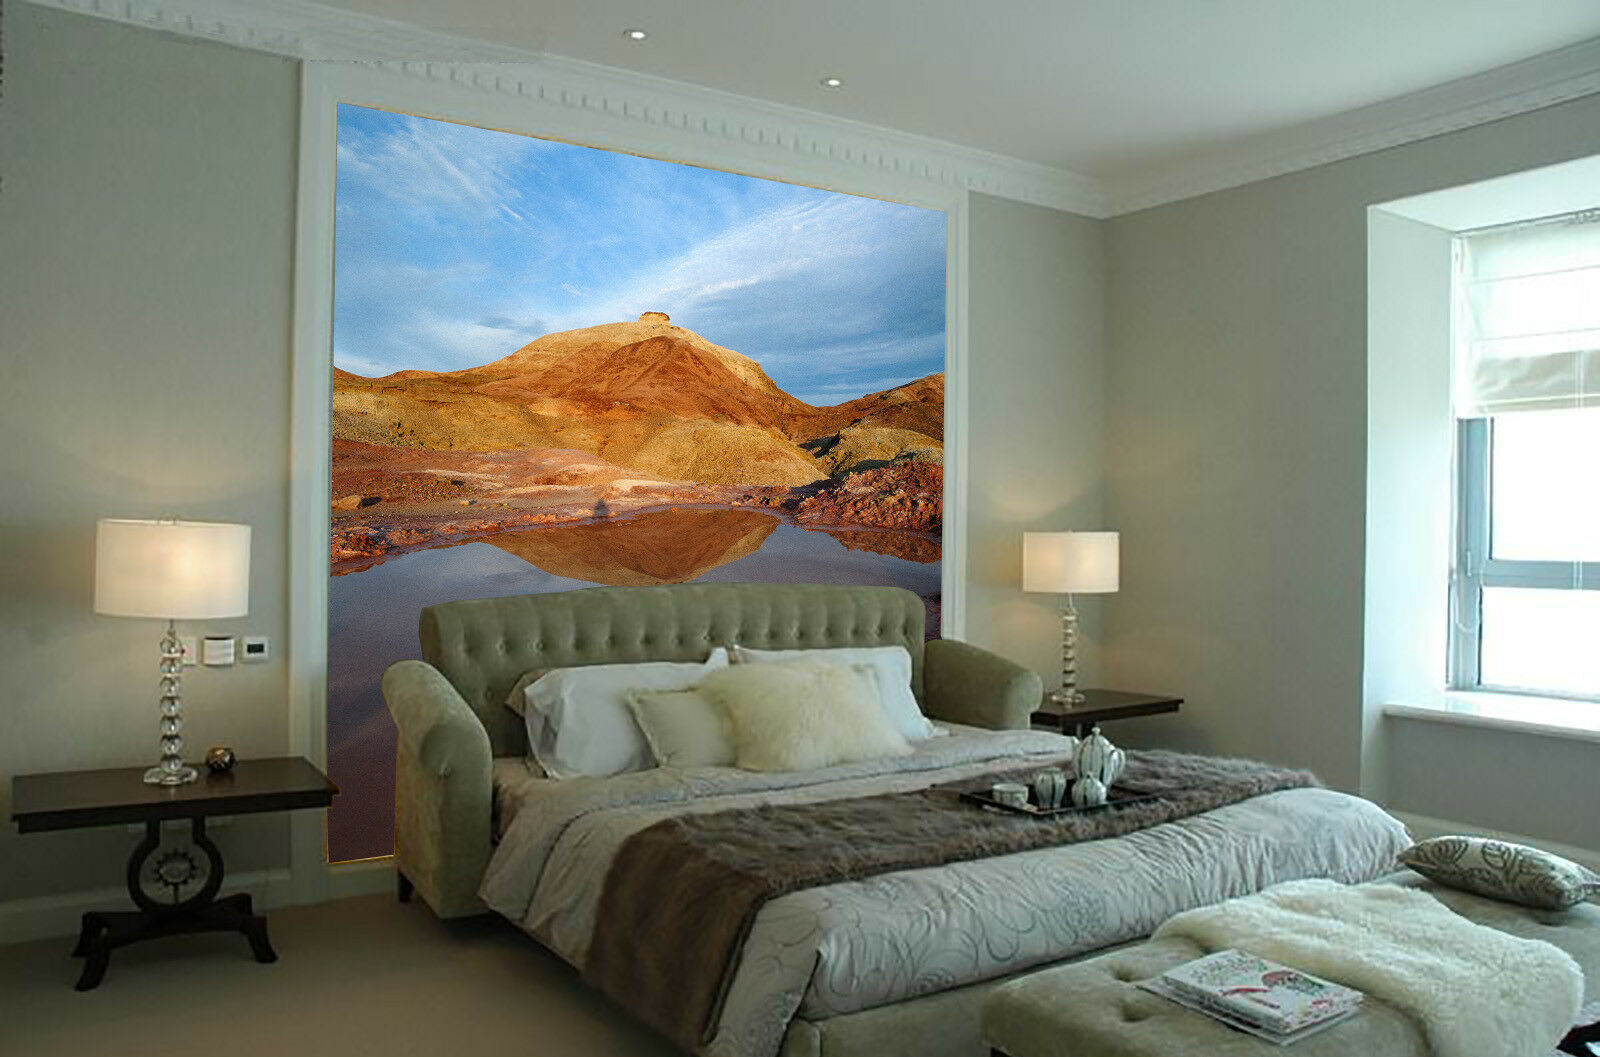 3D Hill Pool 4154 WandPapier Murals Wand Drucken WandPapier Mural AJ Wand UK Lemon